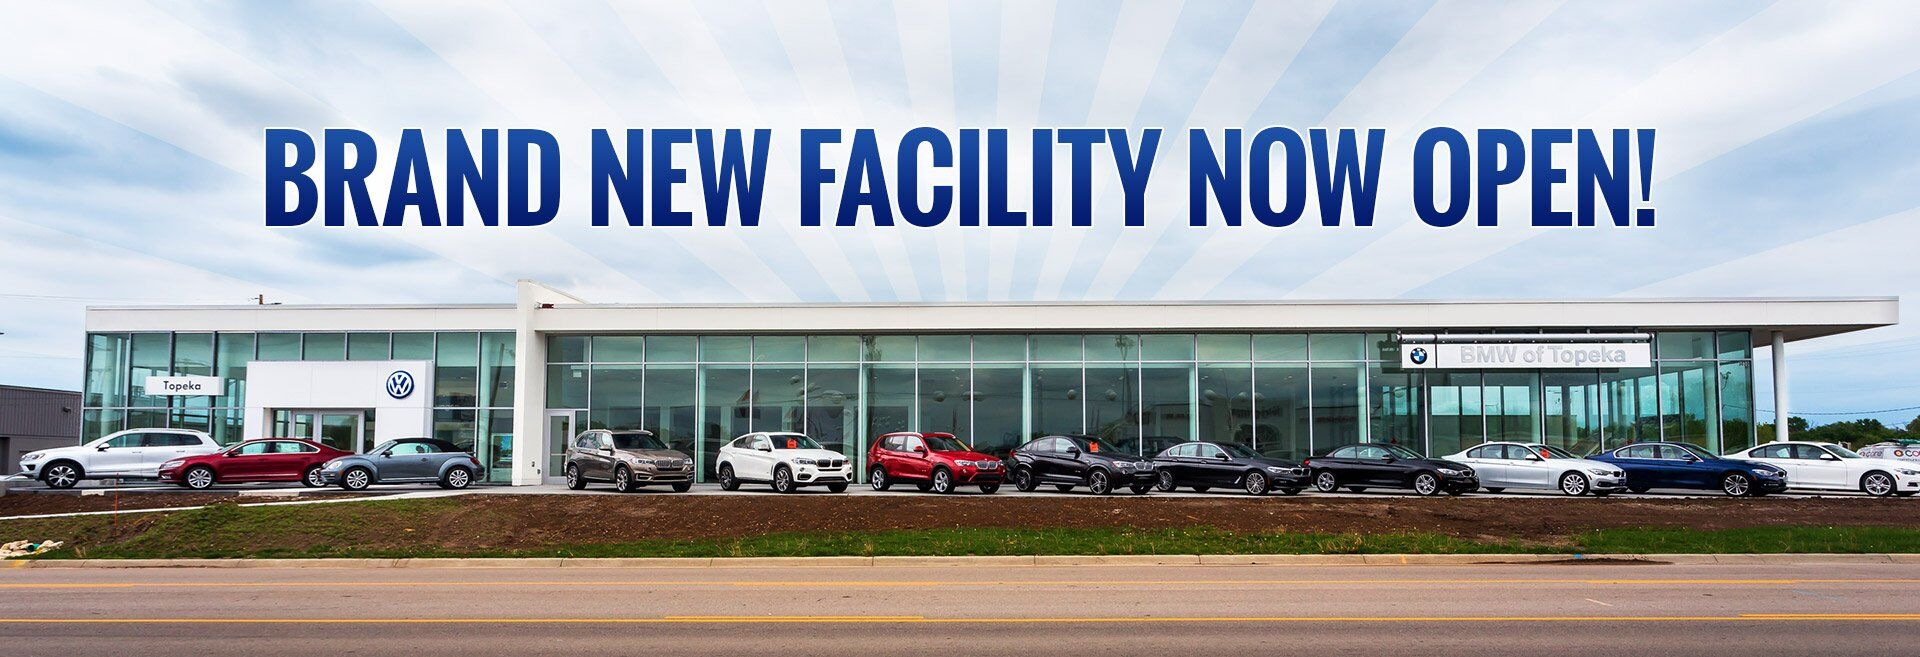 New Facility now open